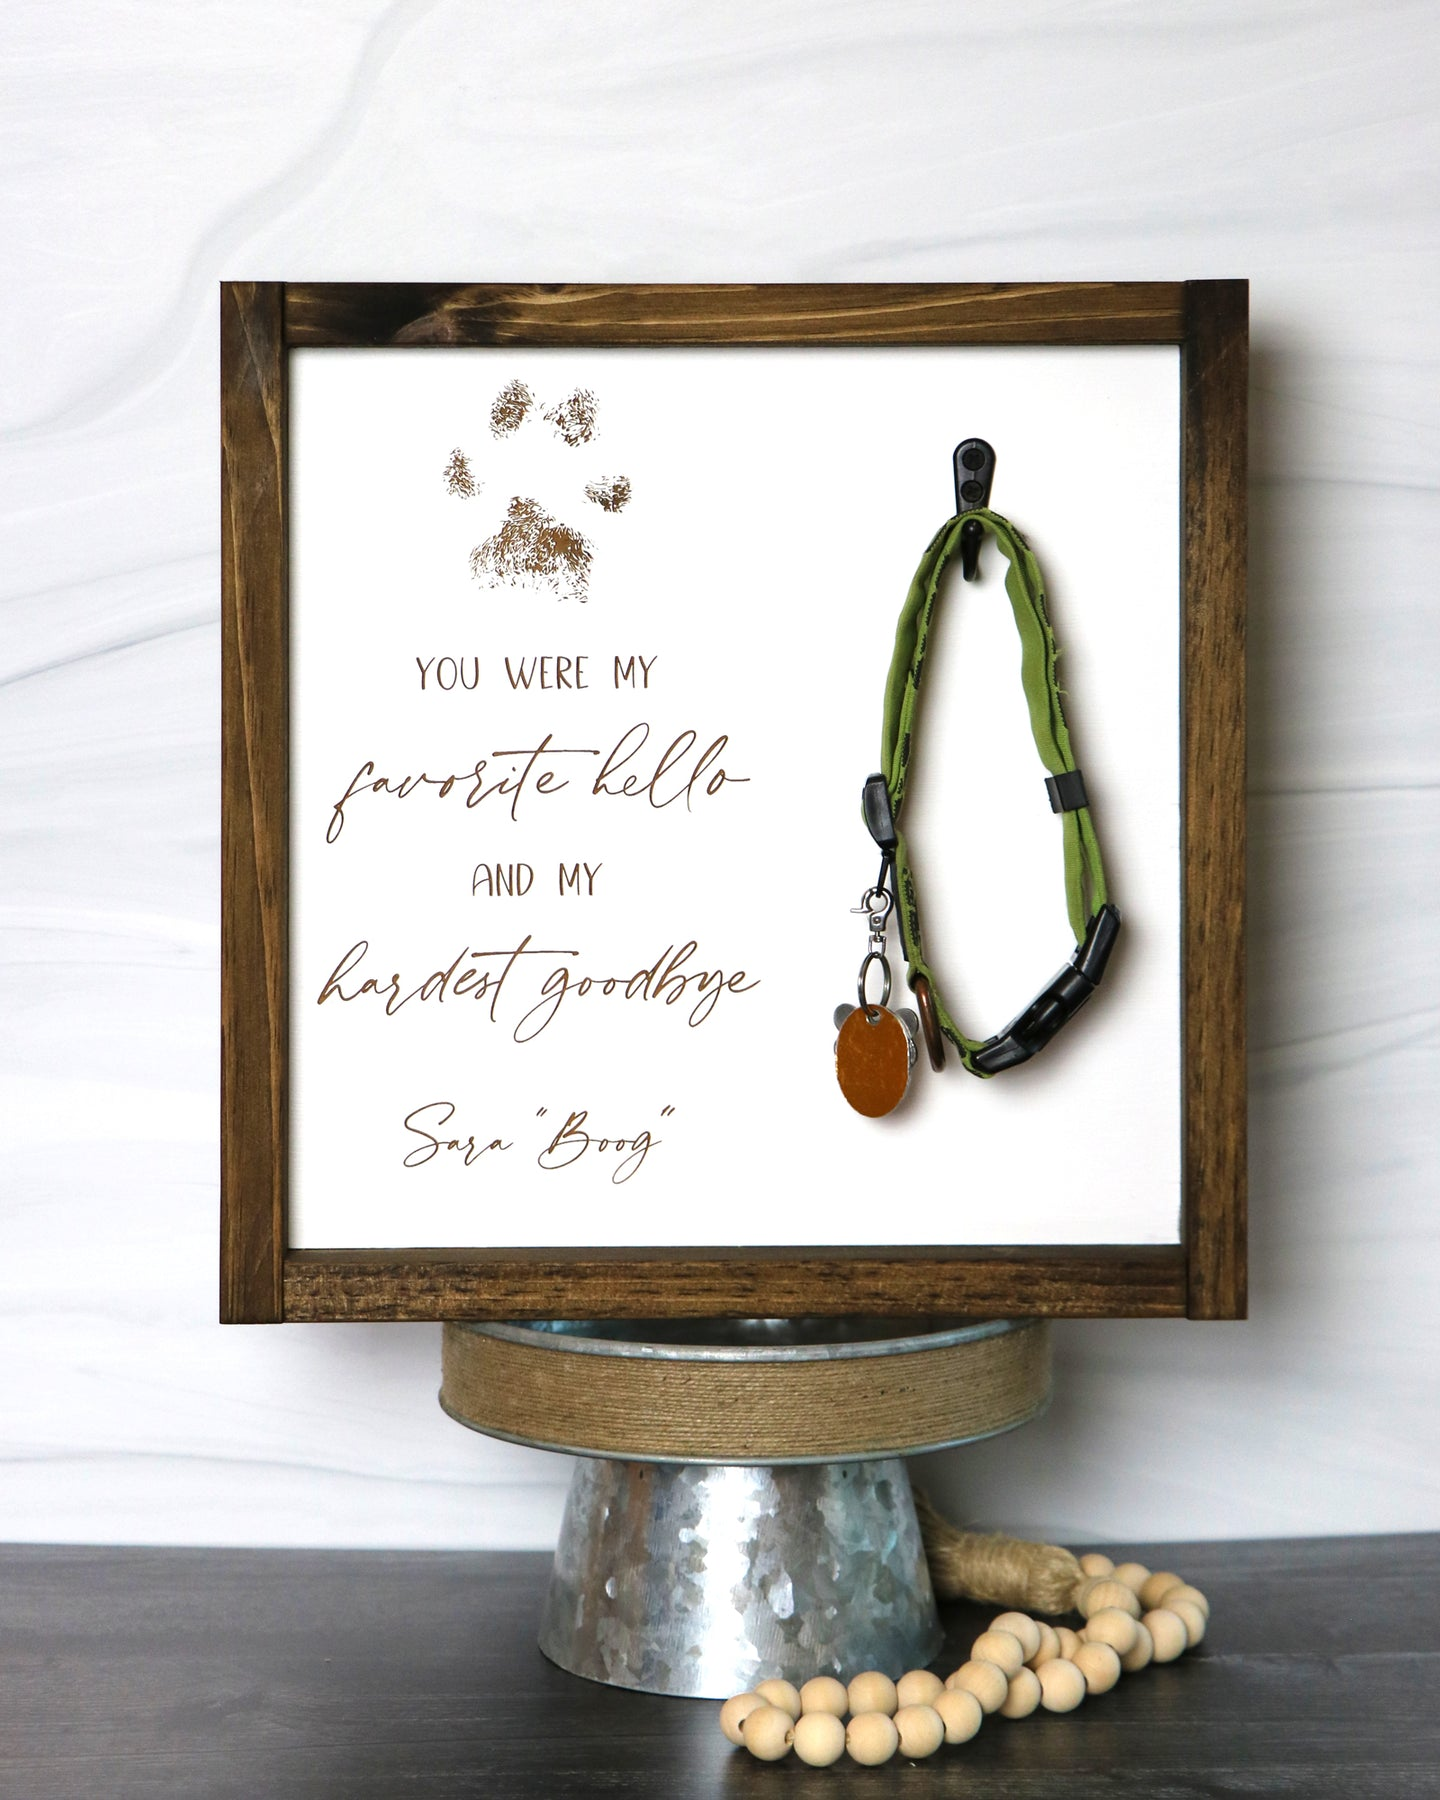 Pet Memorial Collar Keepsake Frame | Personalized Laser Engraved Wood Sign